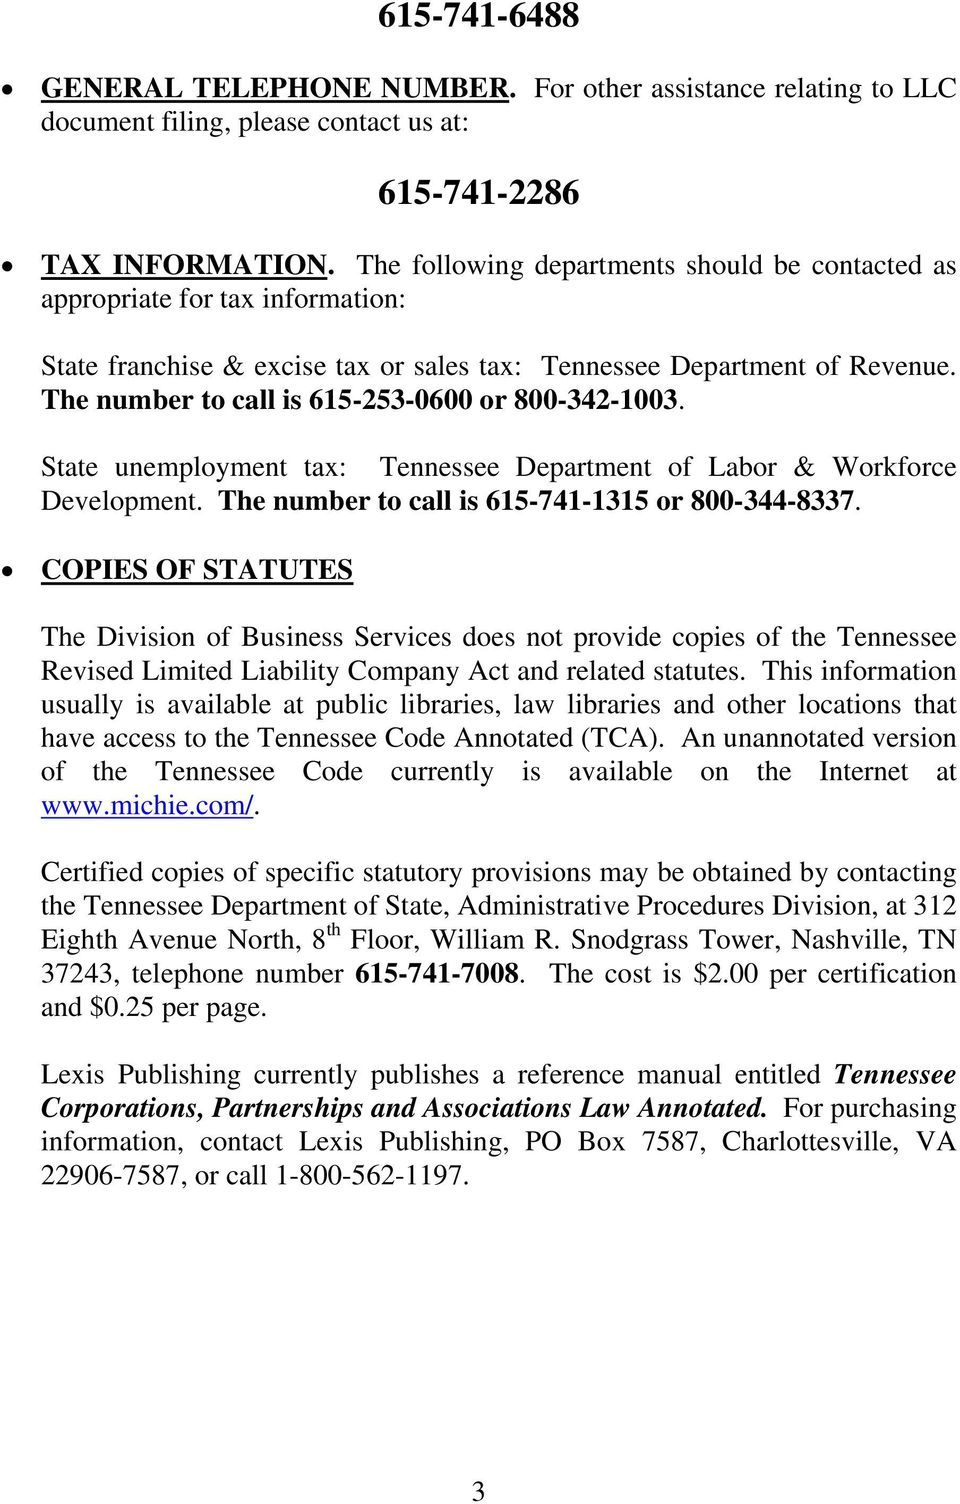 The number to call is 615-253-0600 or 800-342-1003. State unemployment tax: Tennessee Department of Labor & Workforce Development. The number to call is 615-741-1315 or 800-344-8337.